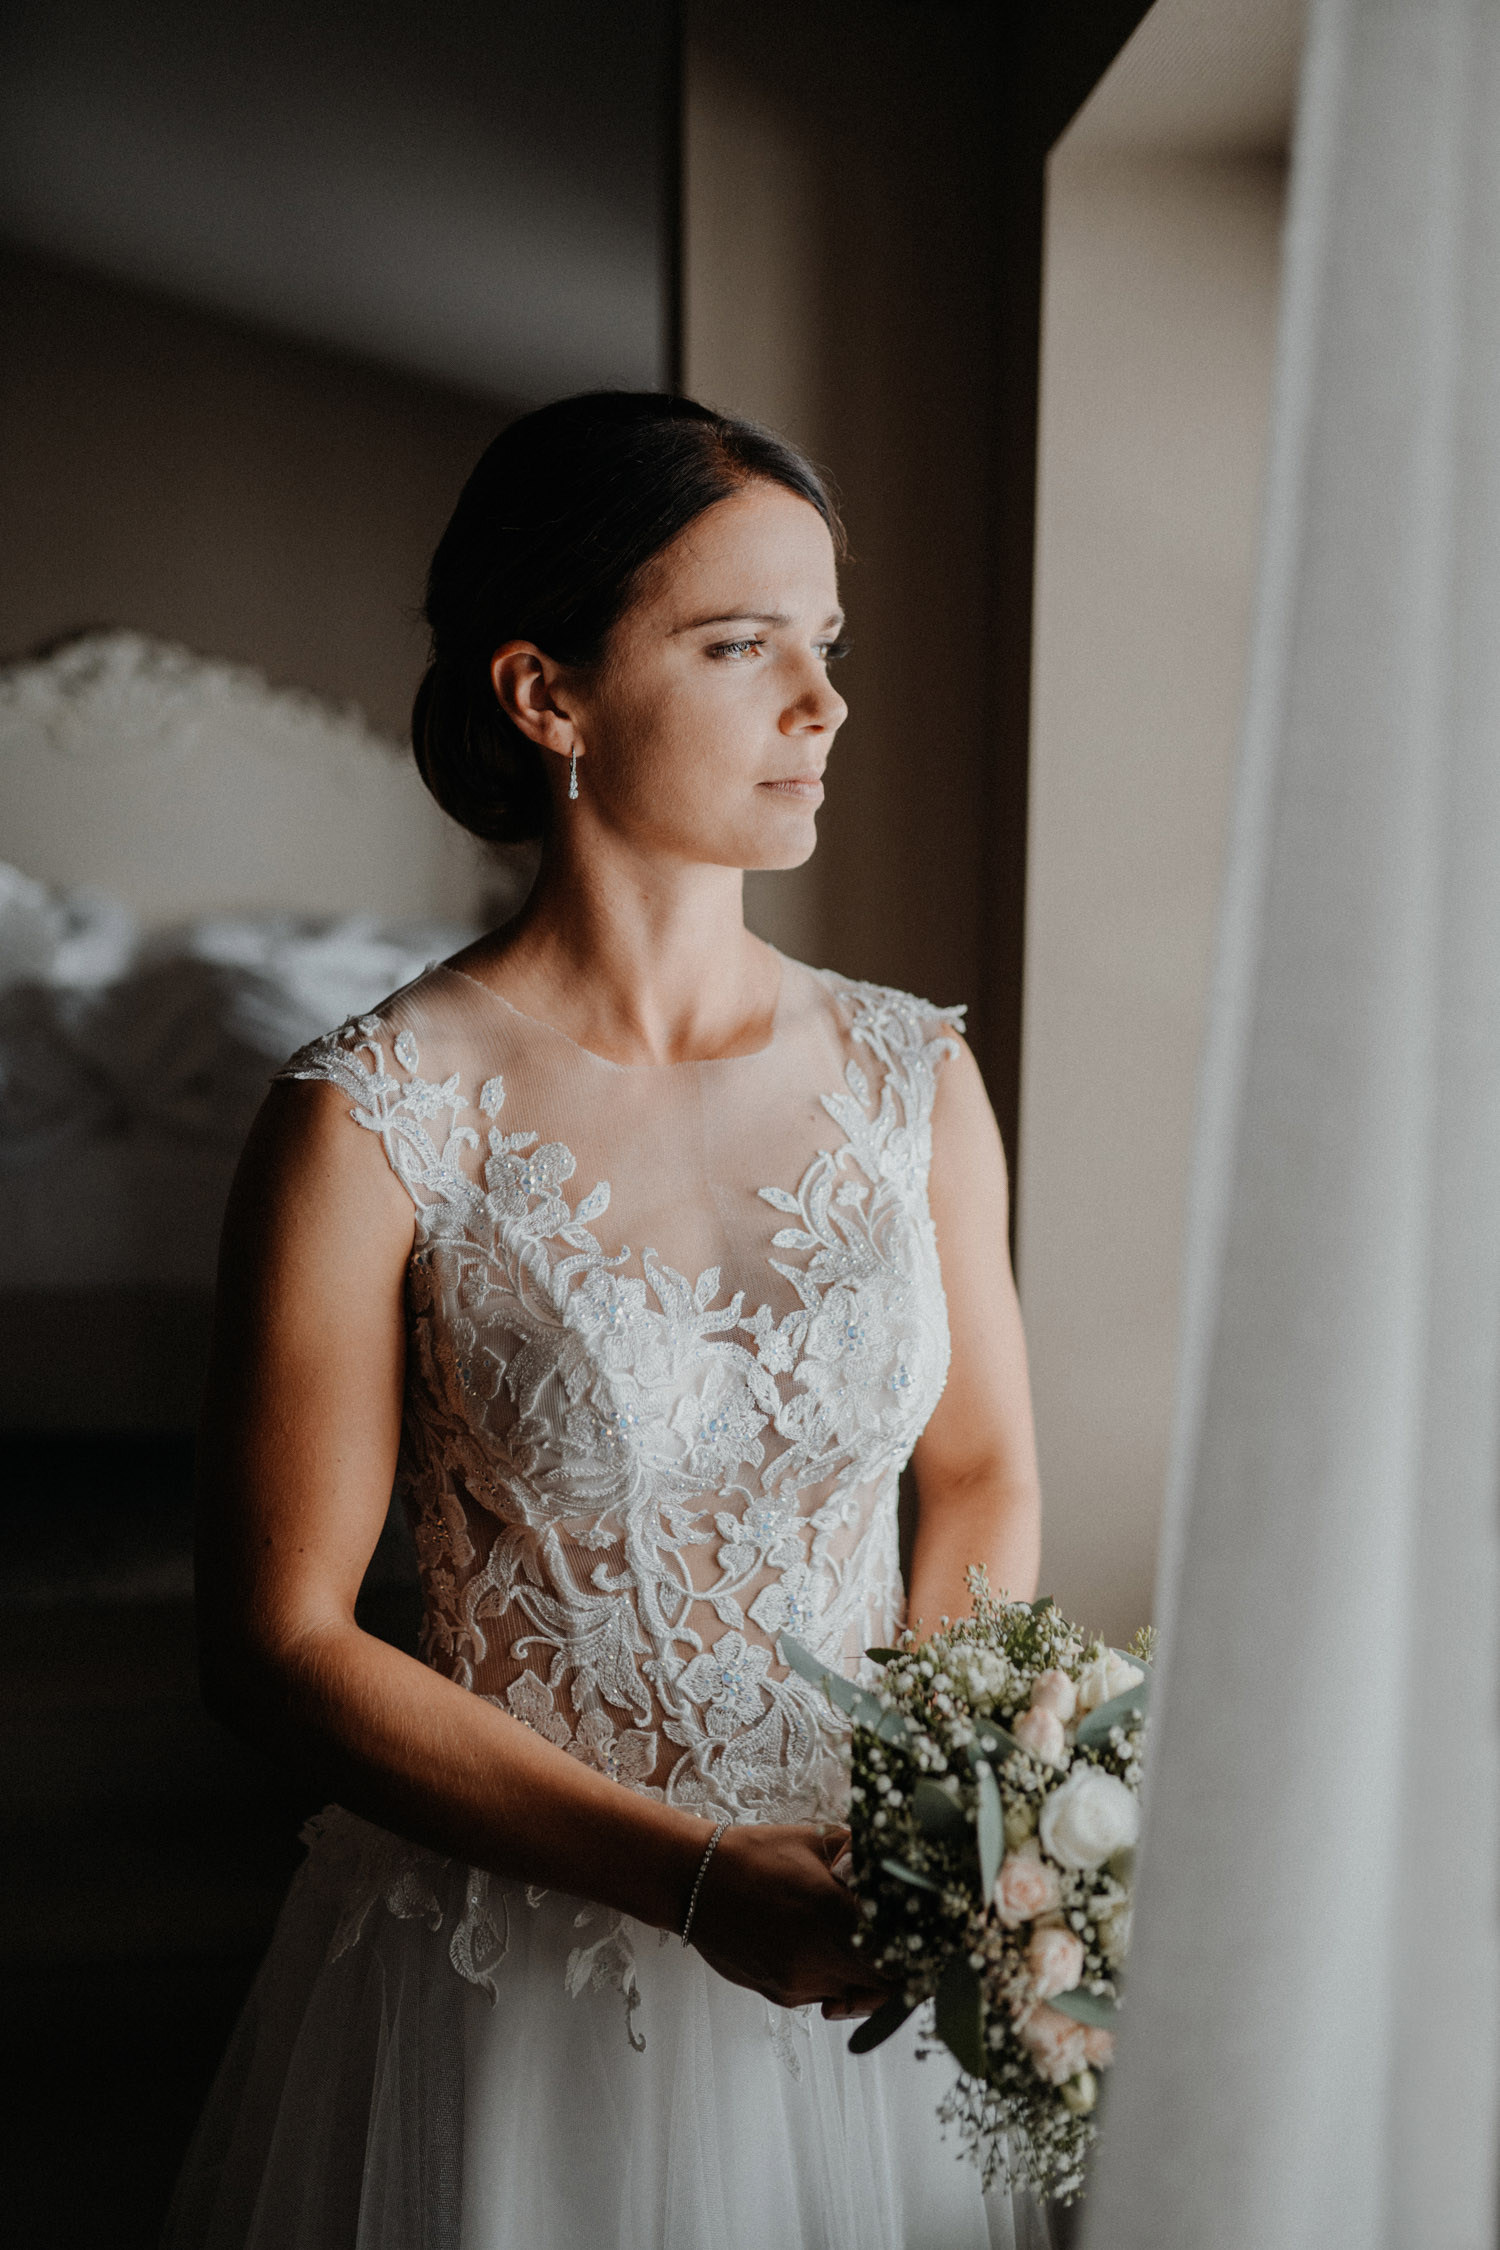 wedding photographer in St. Ursus Cathedral Solothurn Switzerland documentary style Swiss wedding photographer getting ready La Couronne bridal portrait